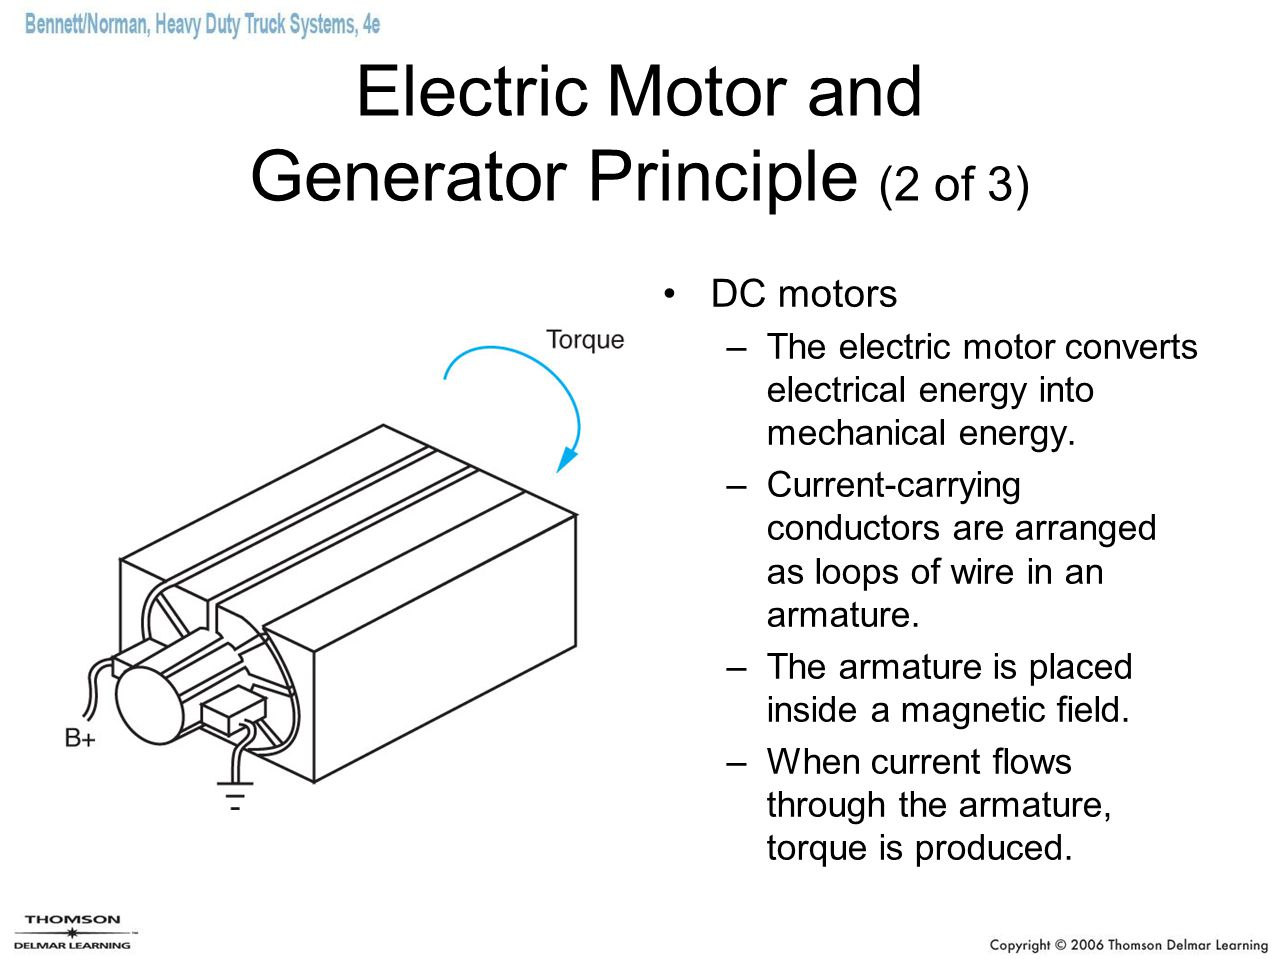 Electric Motor and Generator Principle (2 of 3)